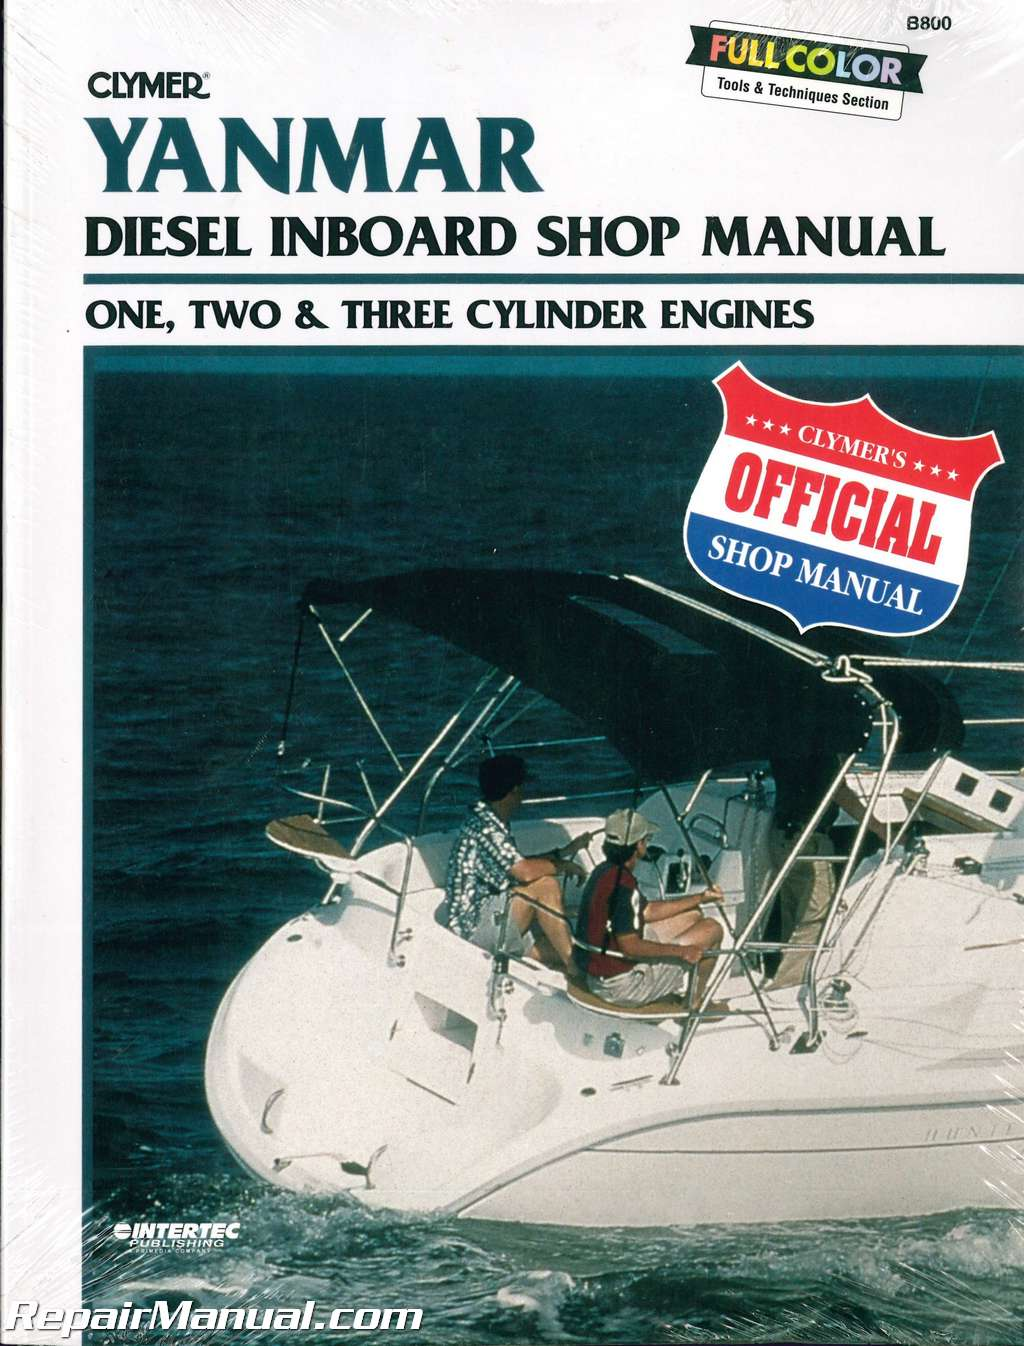 Yanmar Diesel Inboard Boat Engine Shop Manual – One, Two, Three Cylinder by  Clymer